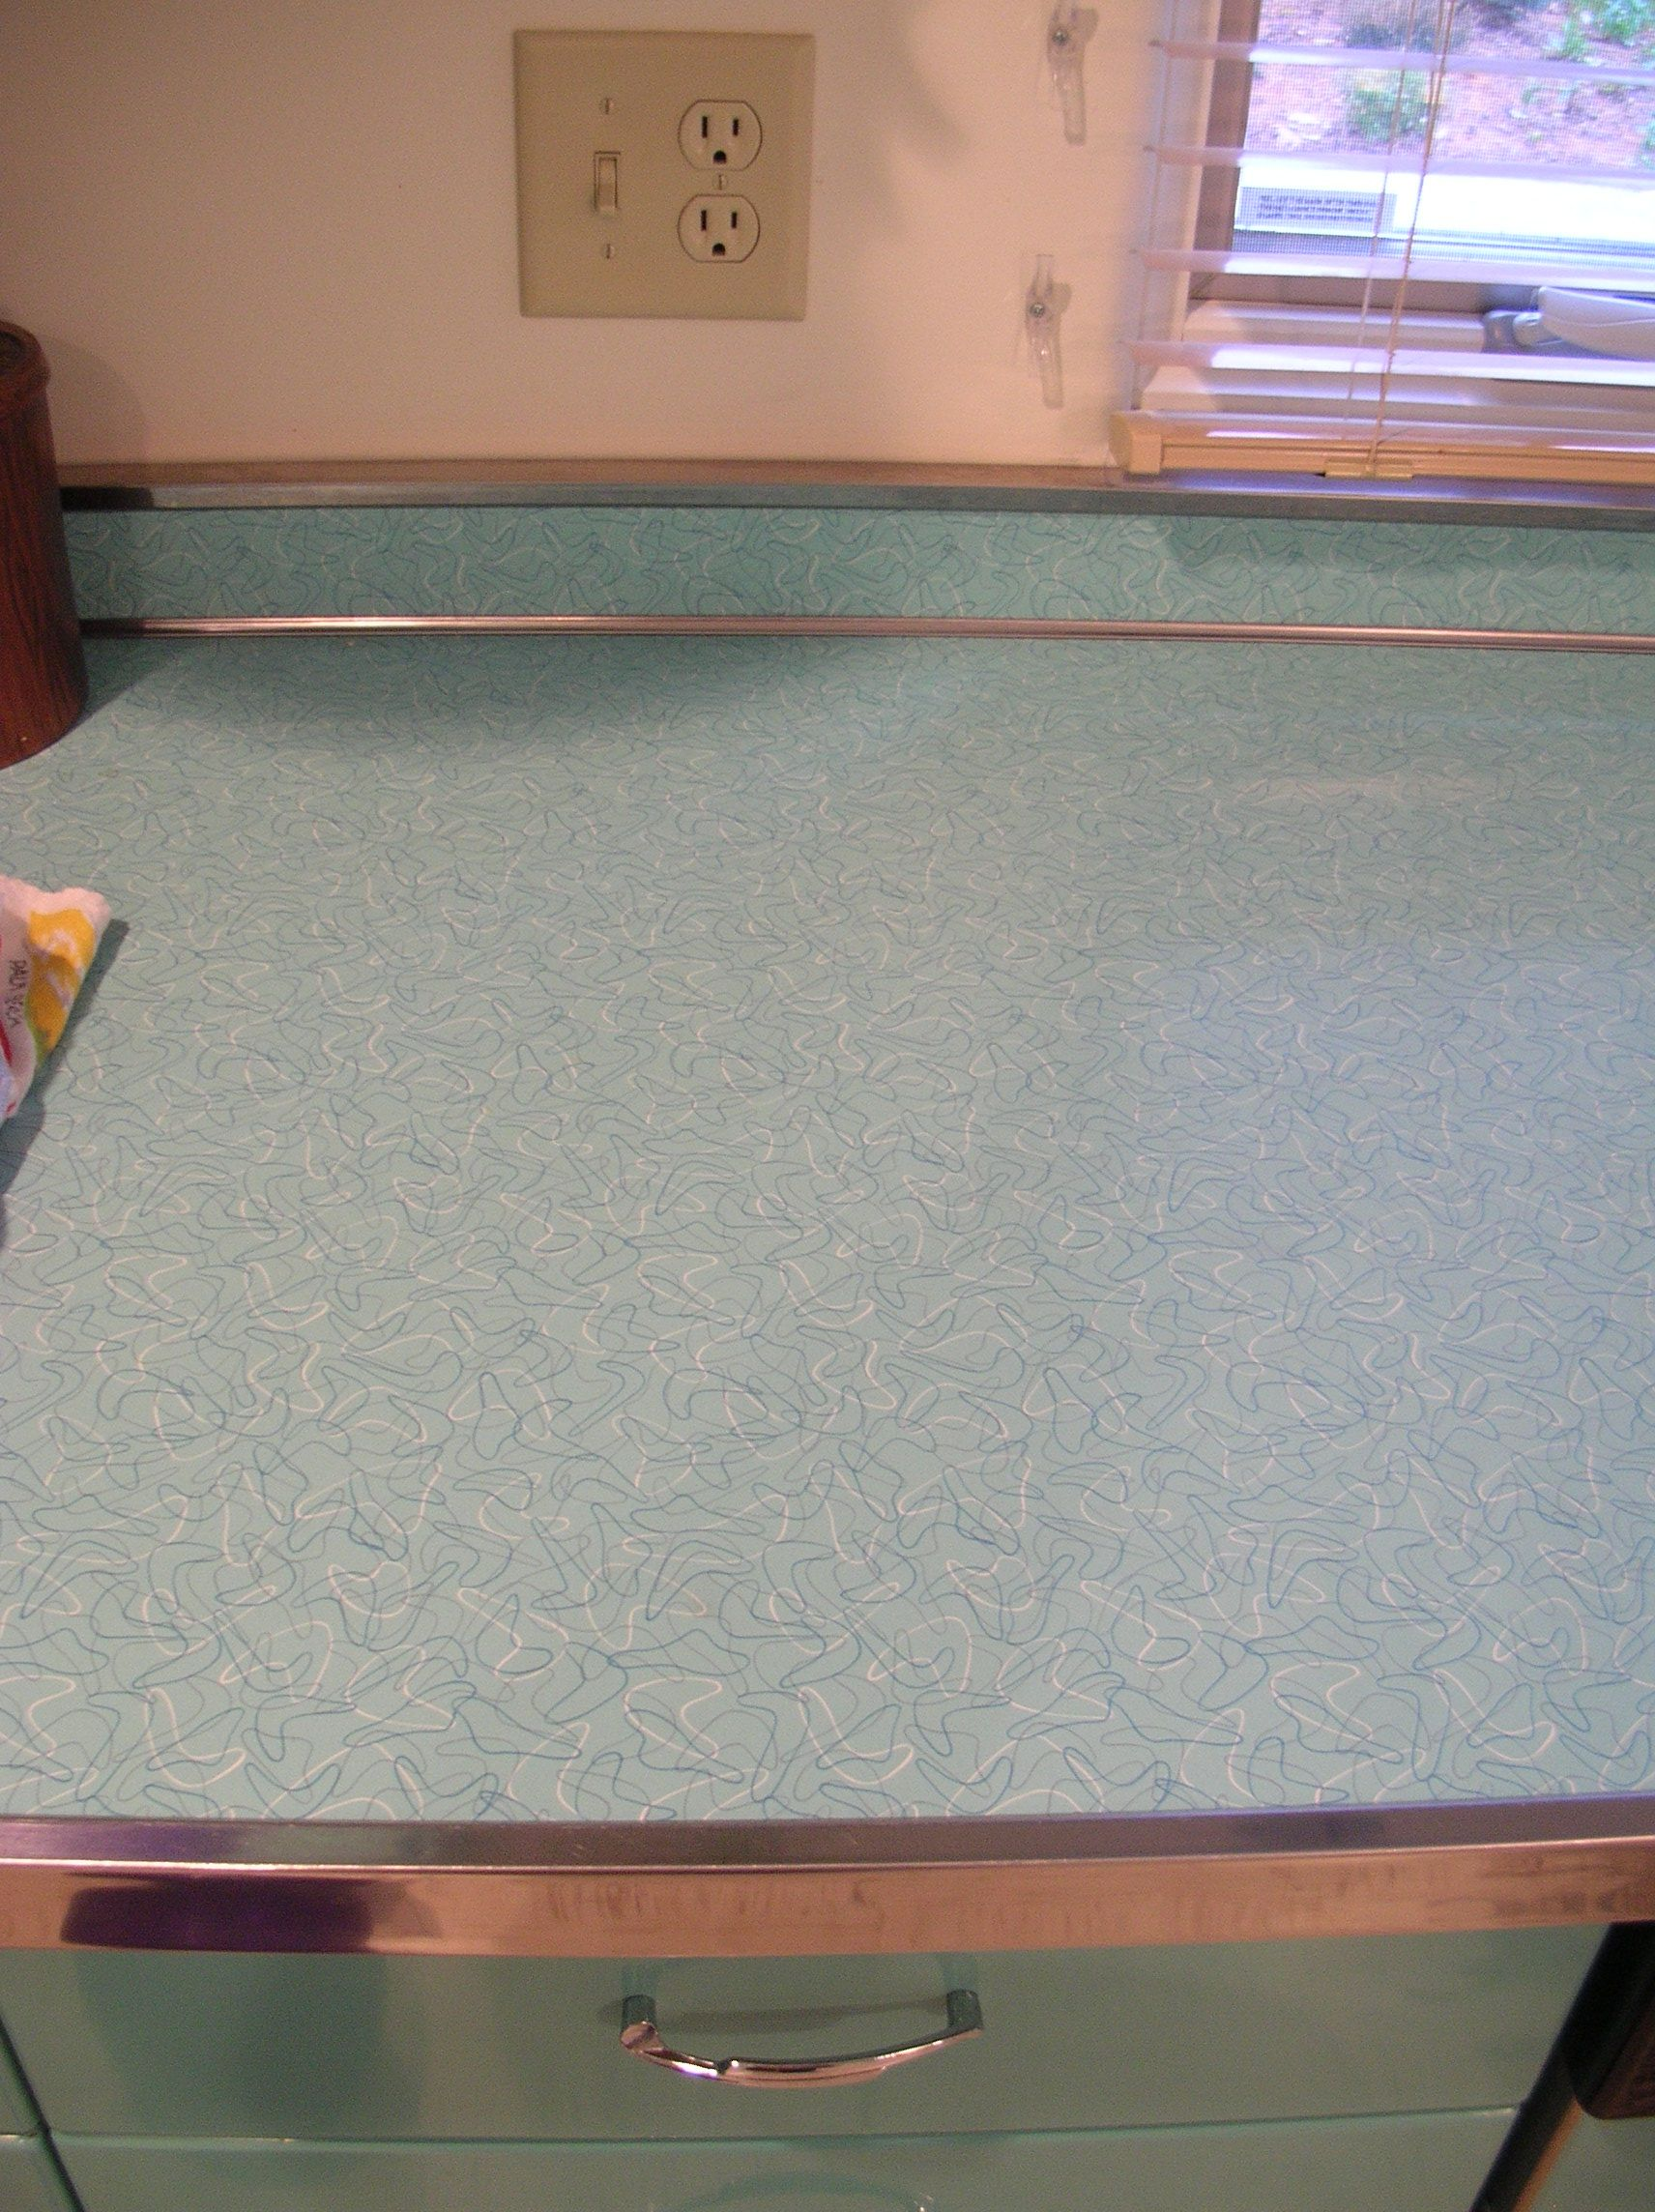 Laminate Countertop Desk Stainless Steel Metal Edging For Your Laminate Countertop